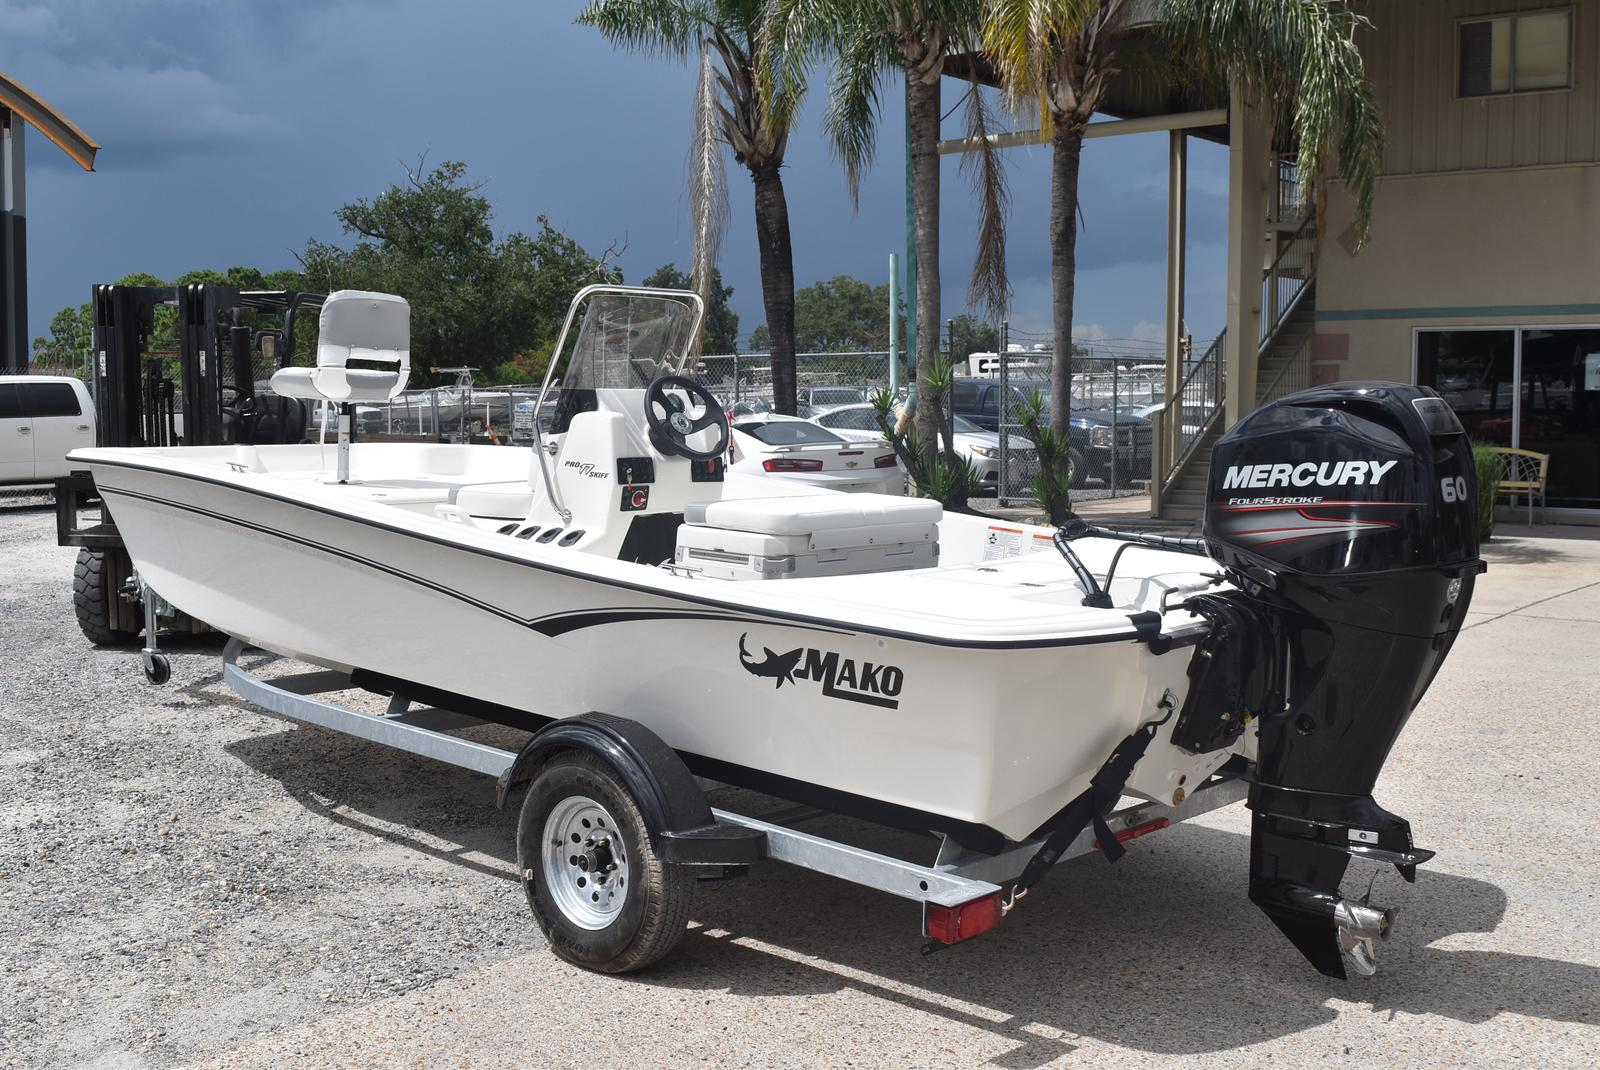 2020 Mako boat for sale, model of the boat is Pro Skiff 17, 75 ELPT & Image # 208 of 702